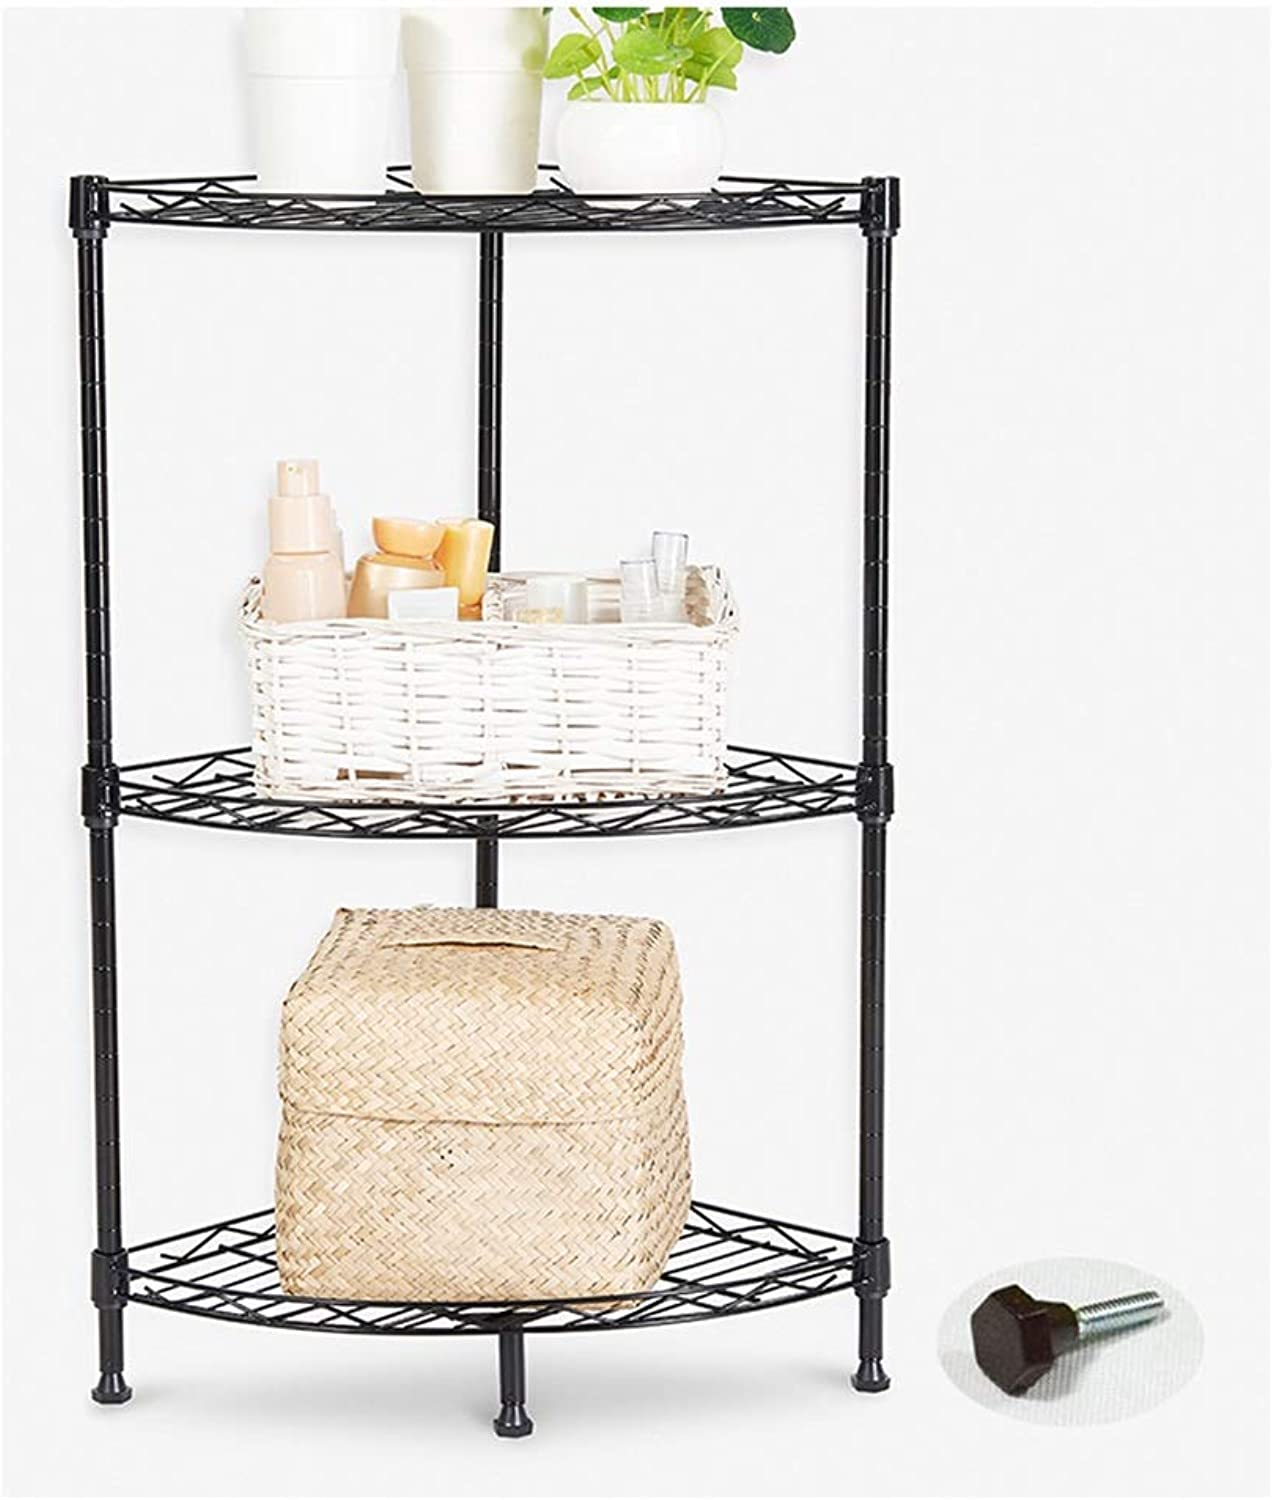 XLong-Home Fan-Shaped Shelf Corner Frame Bathroom Trolley Rack Living Room Storage Rack Three-Tier Rack Black